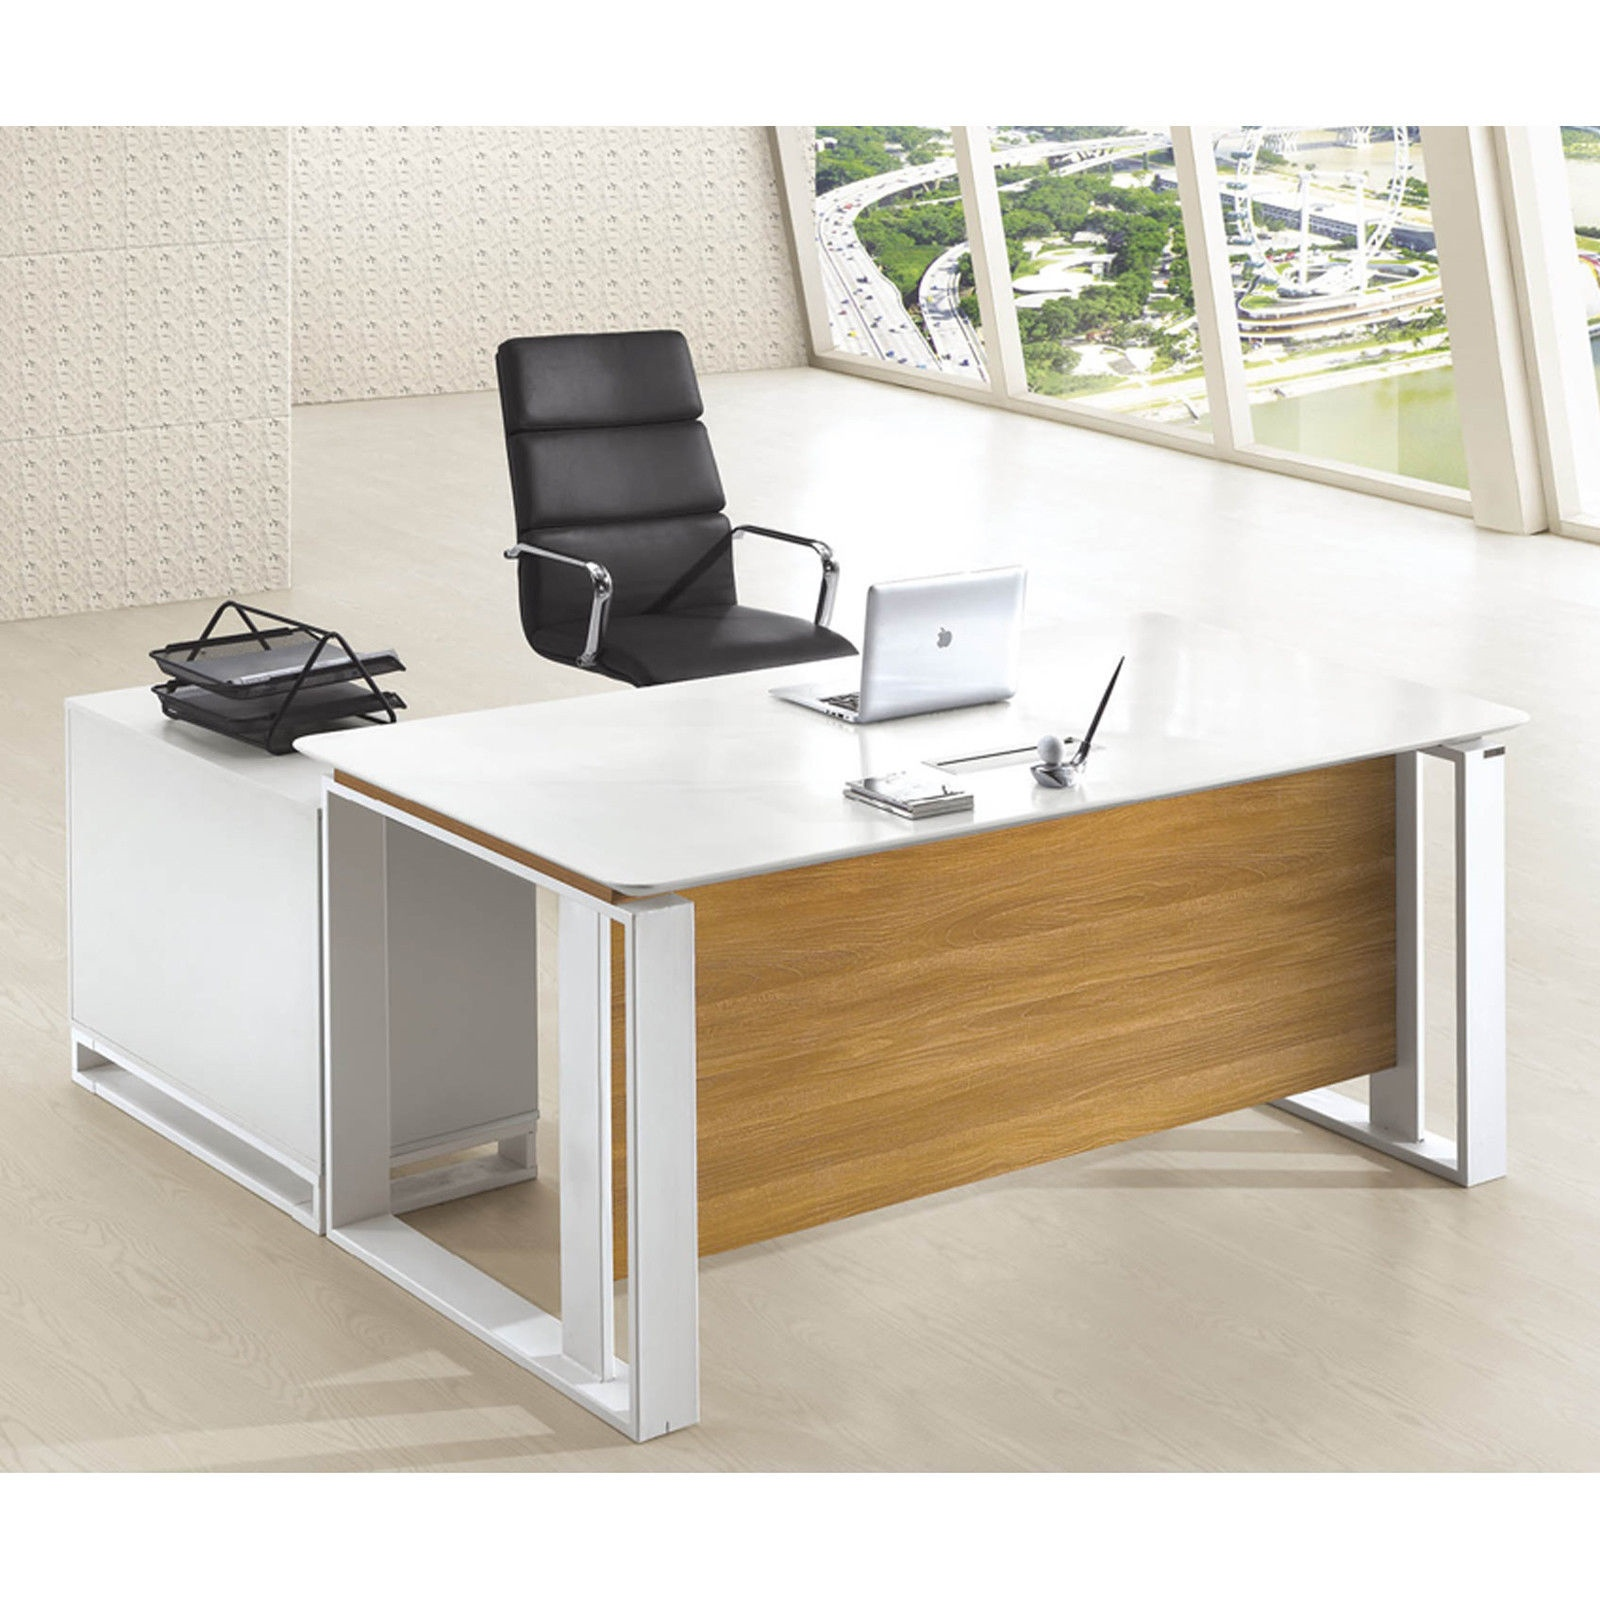 Executive Office Furniture: Modern Executive Office Furniture Computer Table Desk W